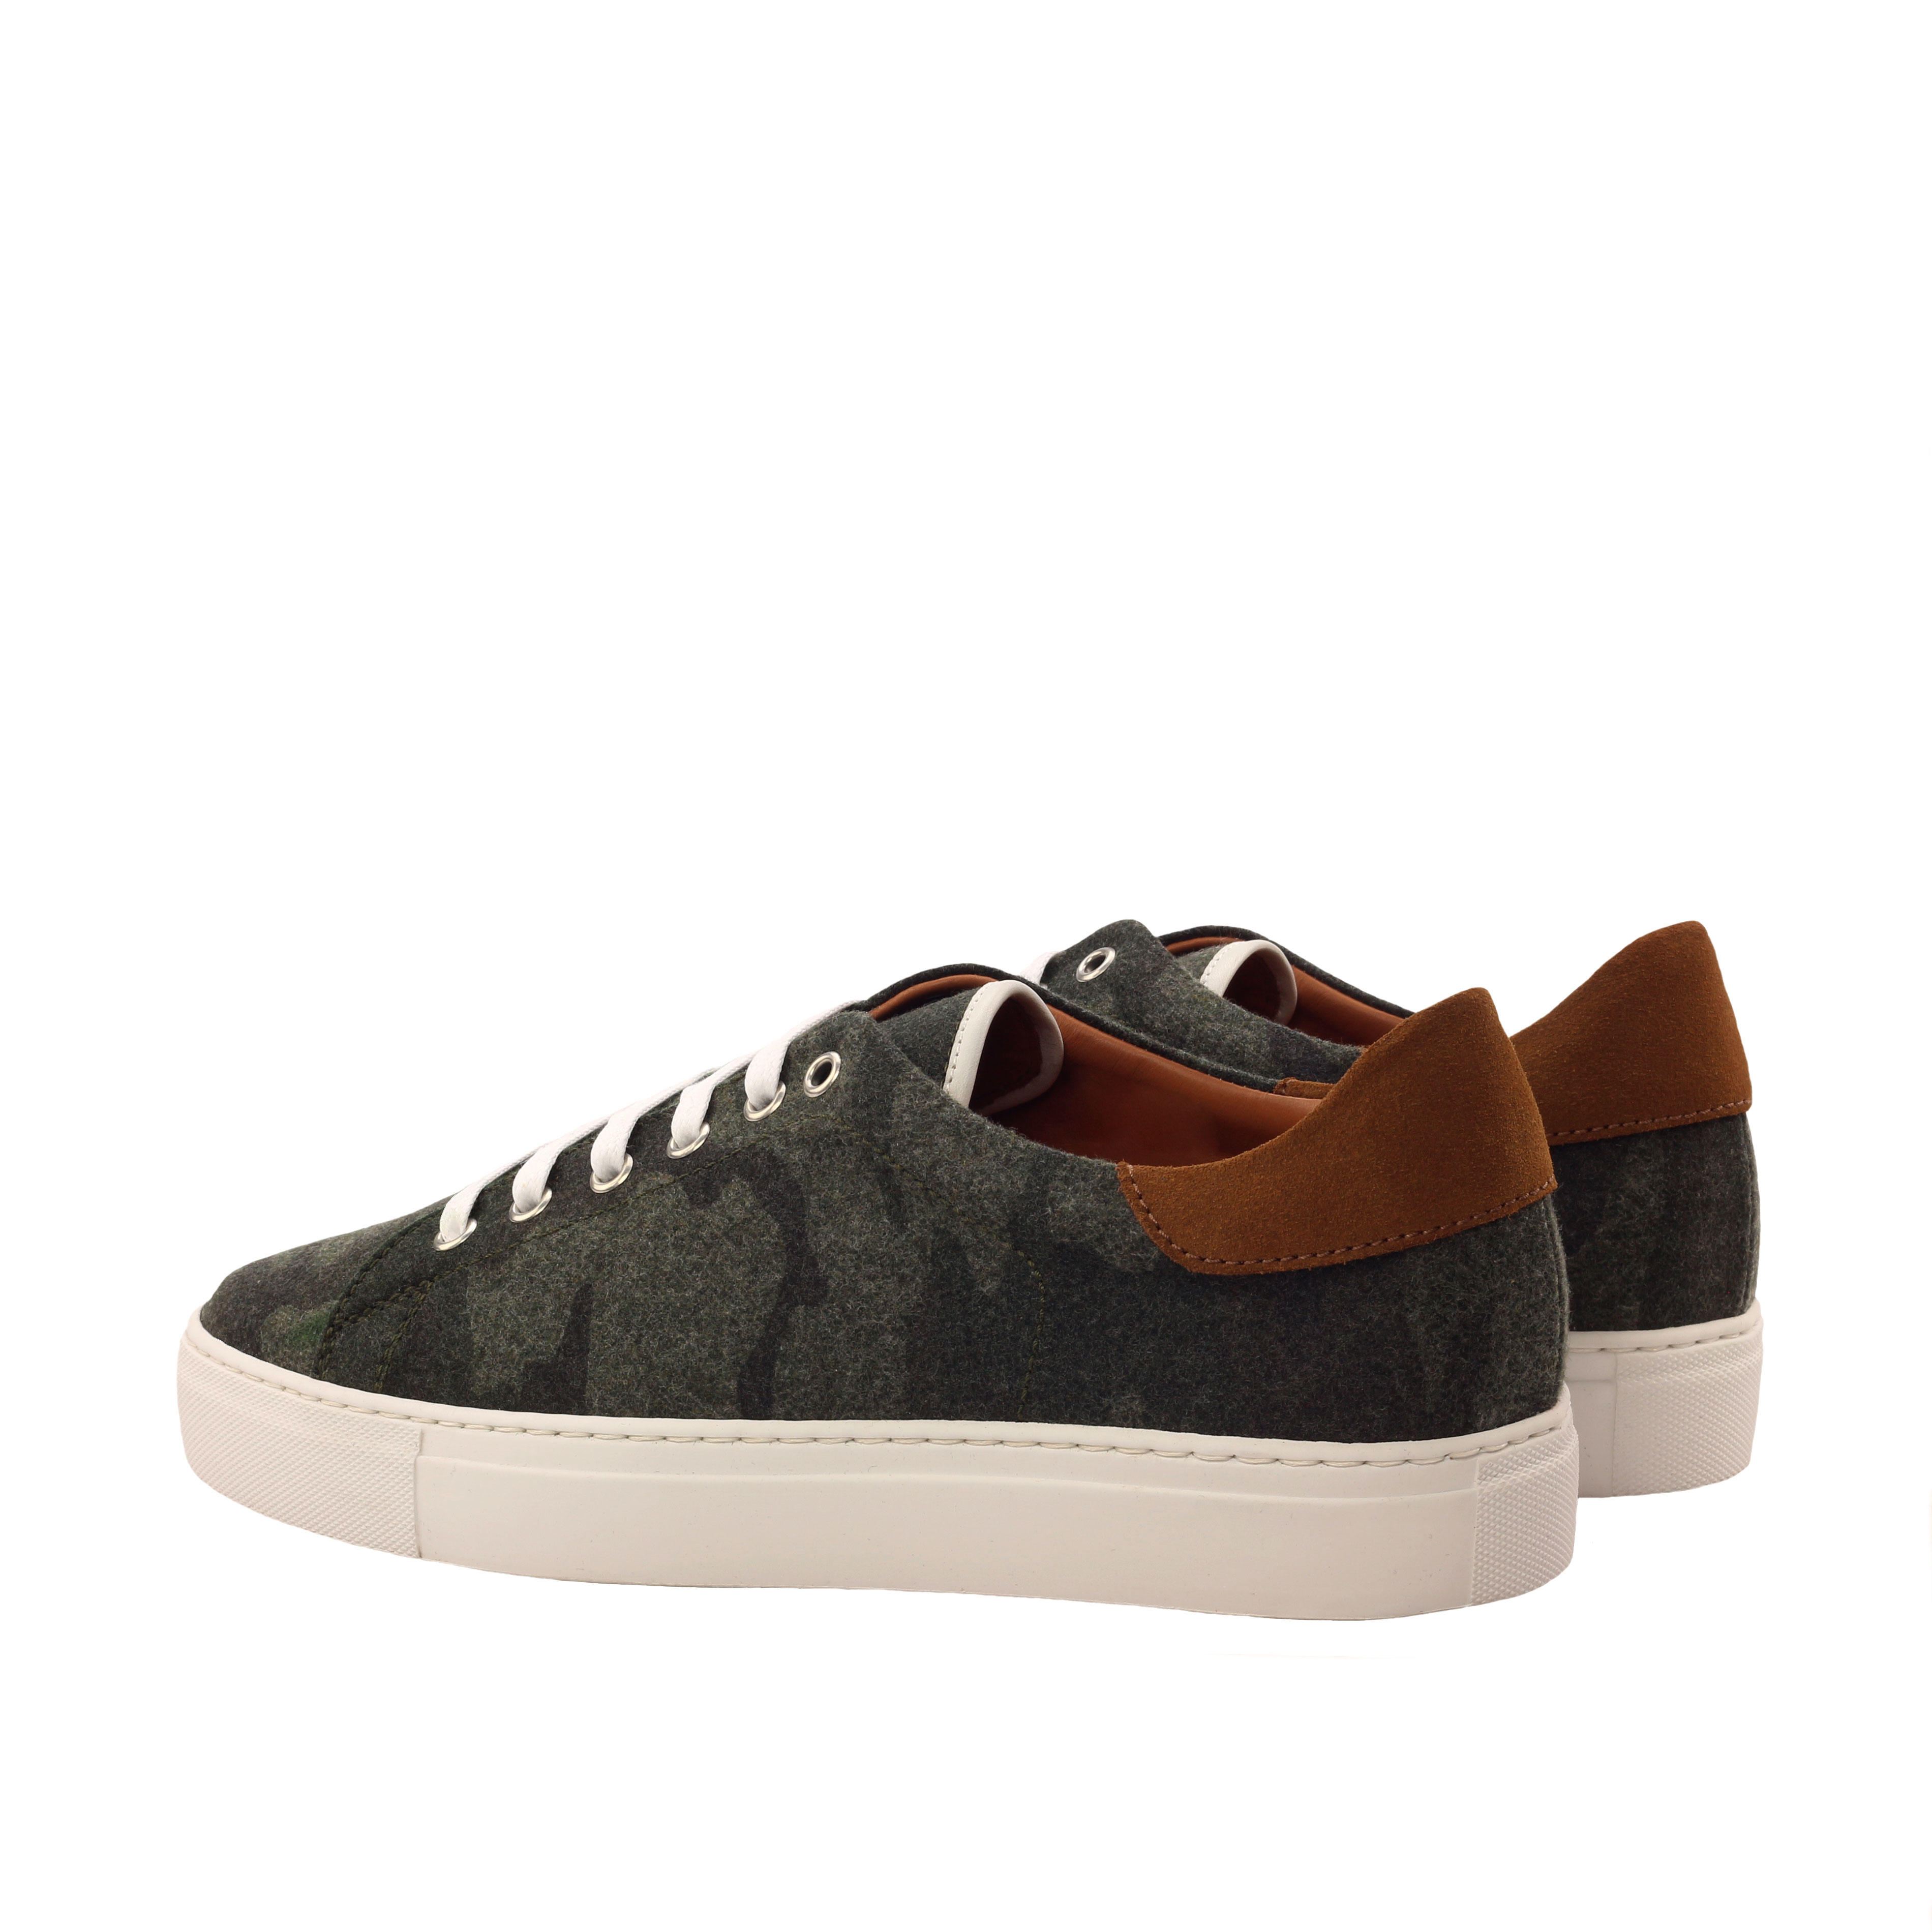 MANOR OF LONDON 'The Perry' Camo Flannel Tennis Trainer Luxury Custom Initials Monogrammed Back Side View